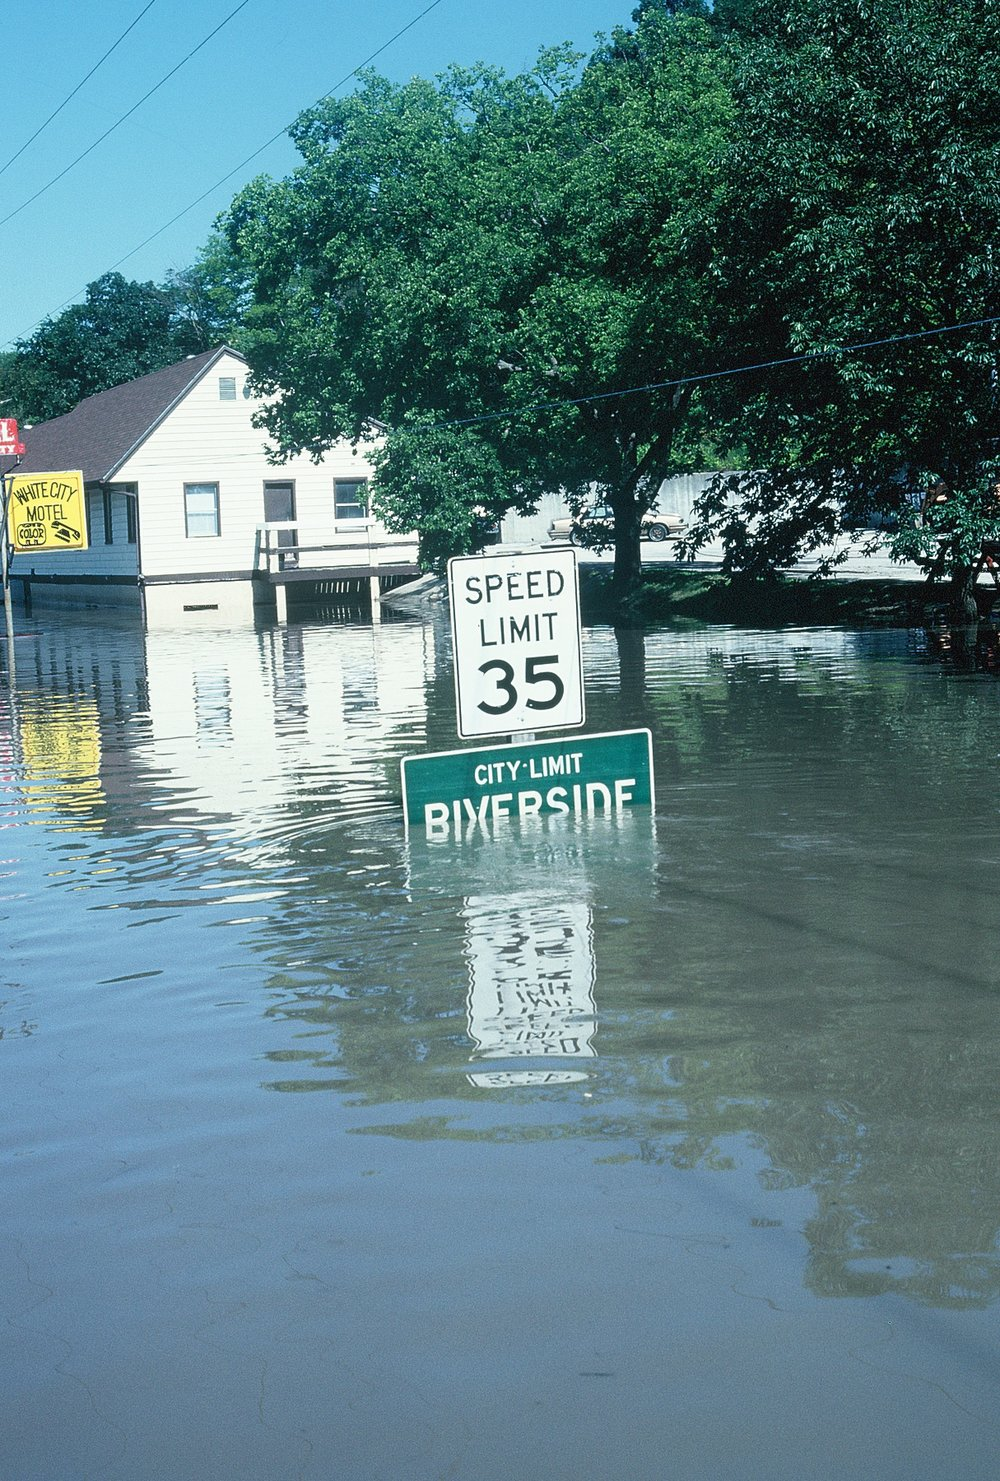 """KENNETH KIESER/ Special to the Citizen  The city limit sign into Riverside during July of 1993 shows the impact the 'Great Flood' had in the area. Towns such as Riverside, Parkville and Tracy were inundated with flood waters when the rivers left their banks. Local resident Kenneth Kieser penned a book: """"Missouri's Great Flood of 1993,"""" showcasing the photos he took during and after the flood."""